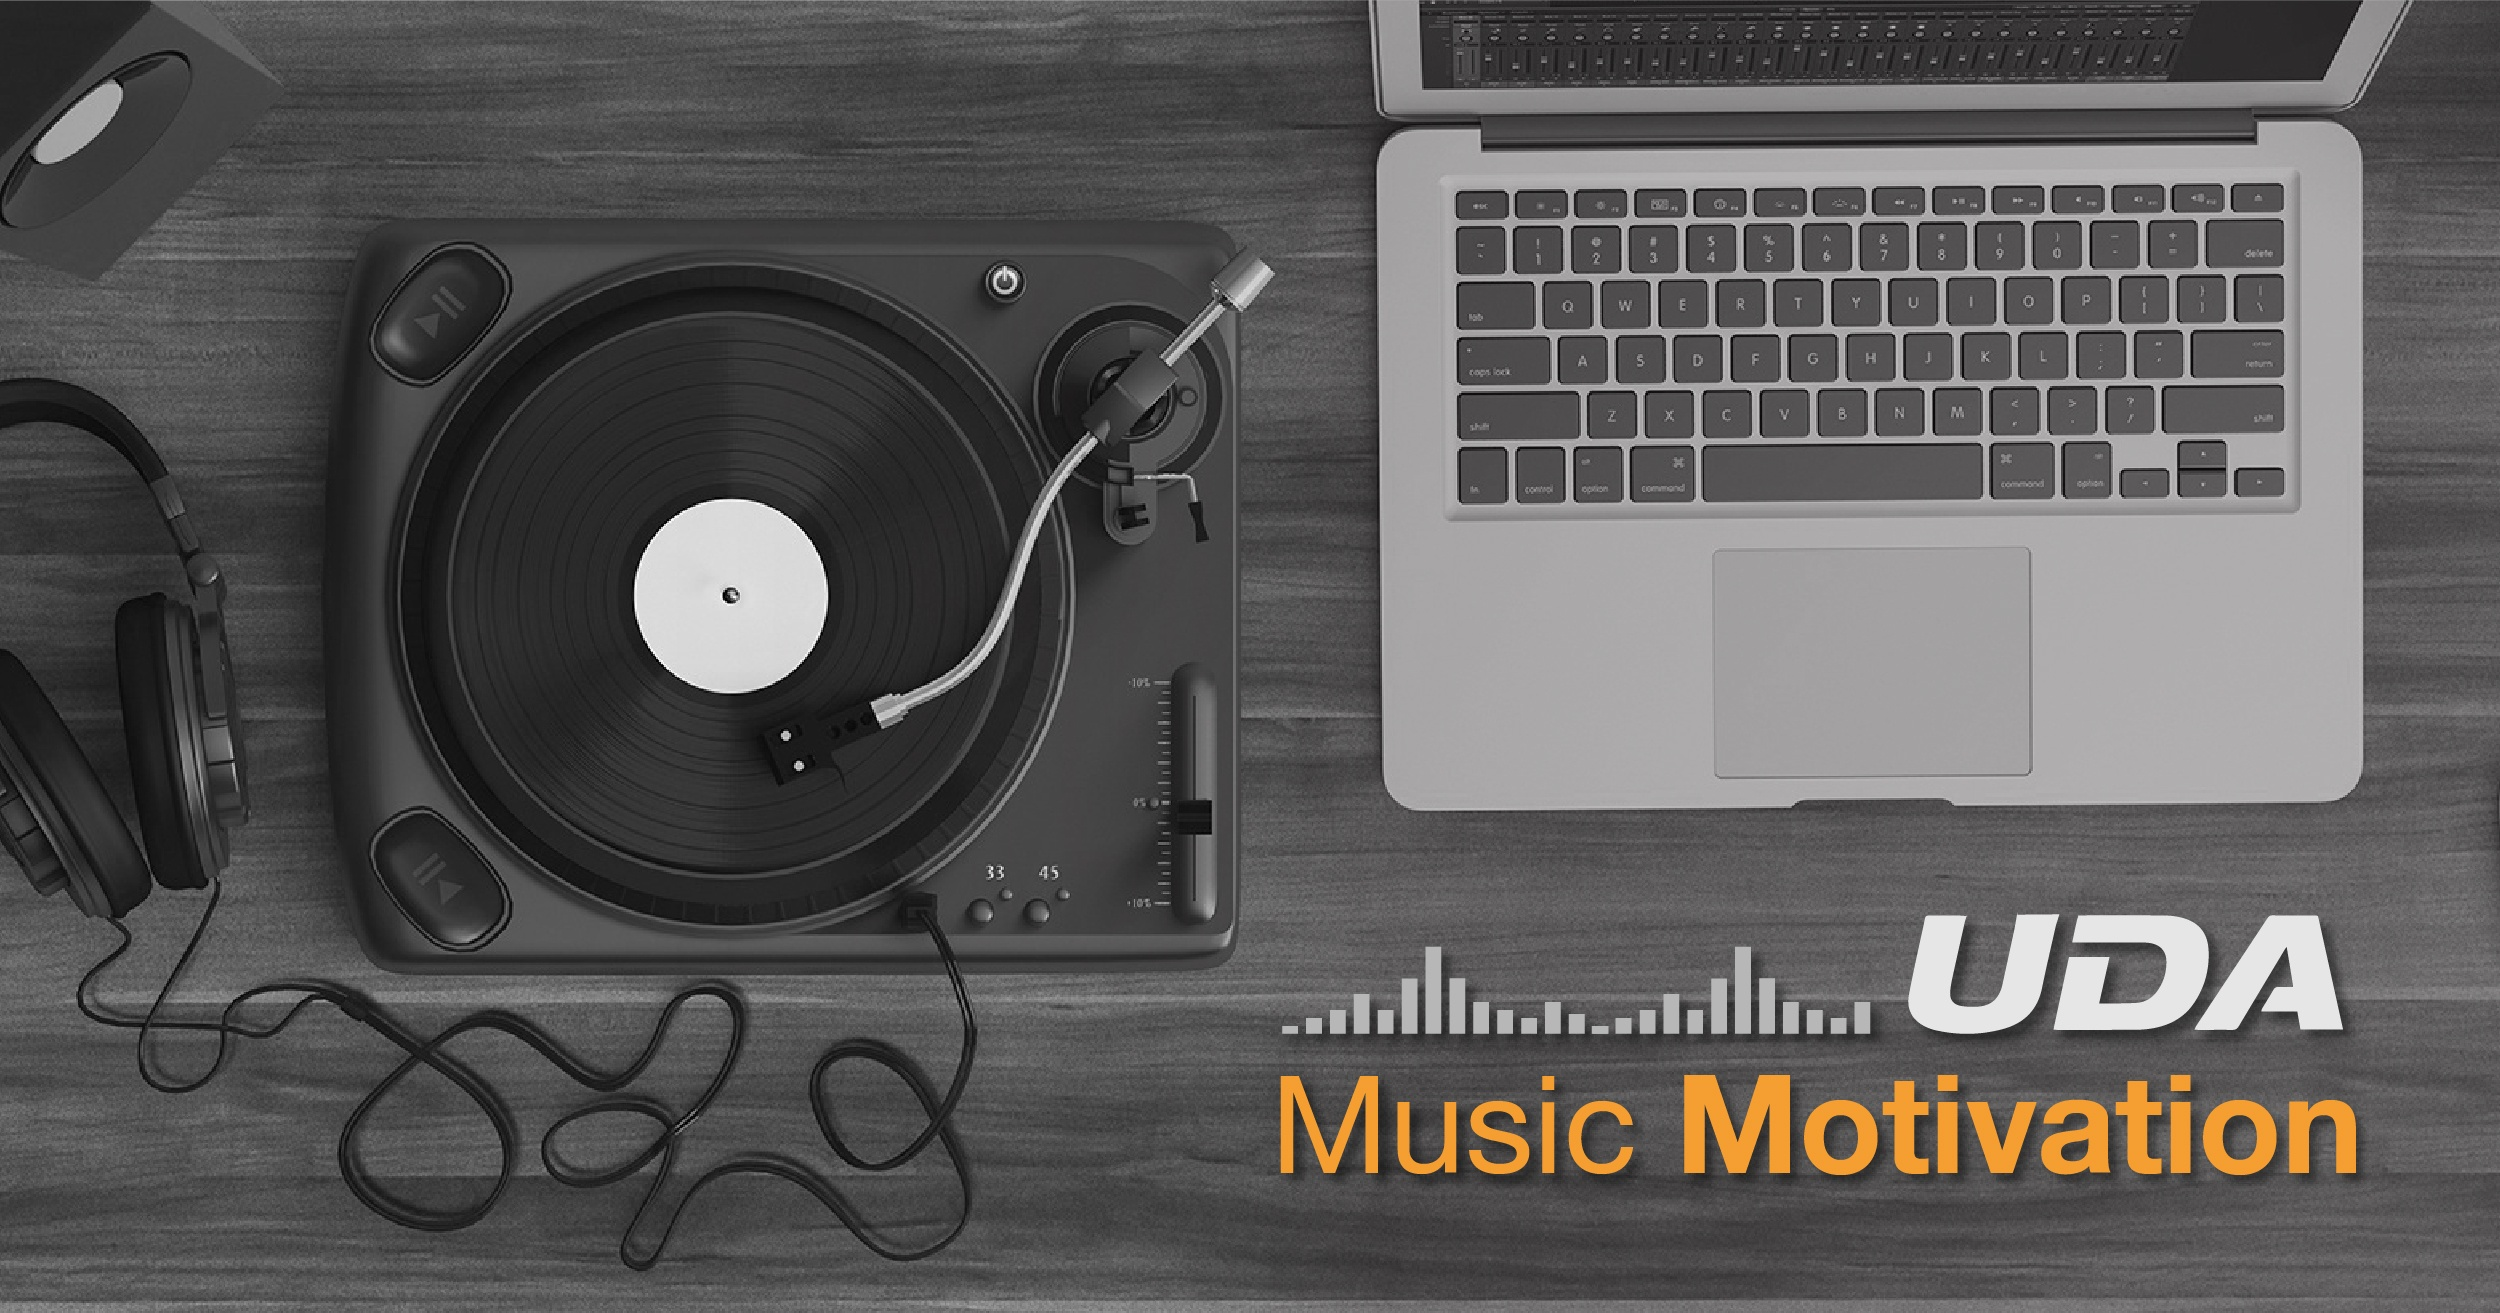 Music Motivation: Reinventing the Wheel